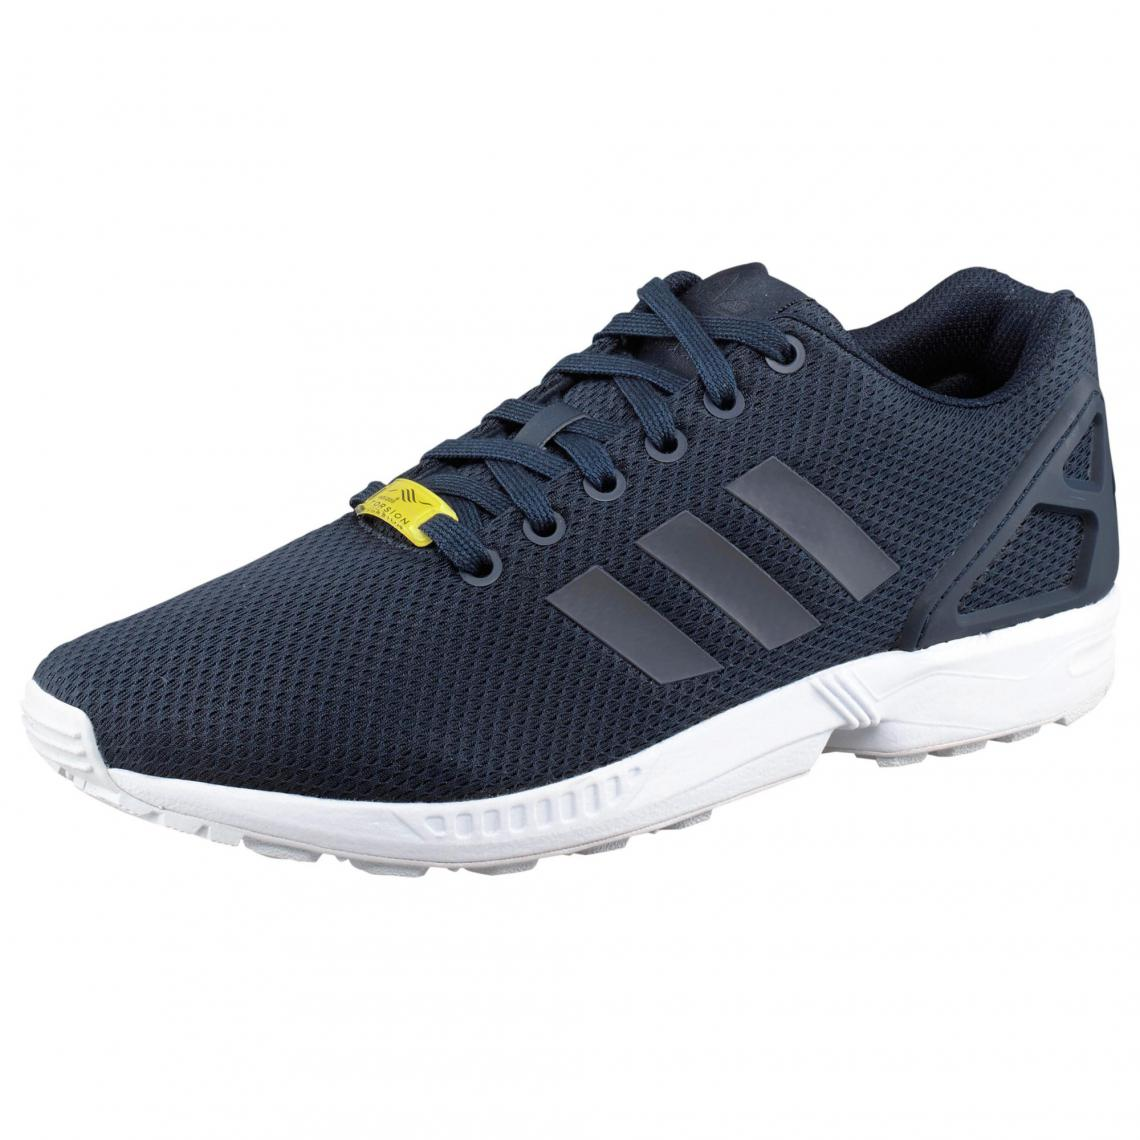 huge selection of ebf44 a3833 Chaussures running homme ZX Flux adidas - Bleu Adidas Homme